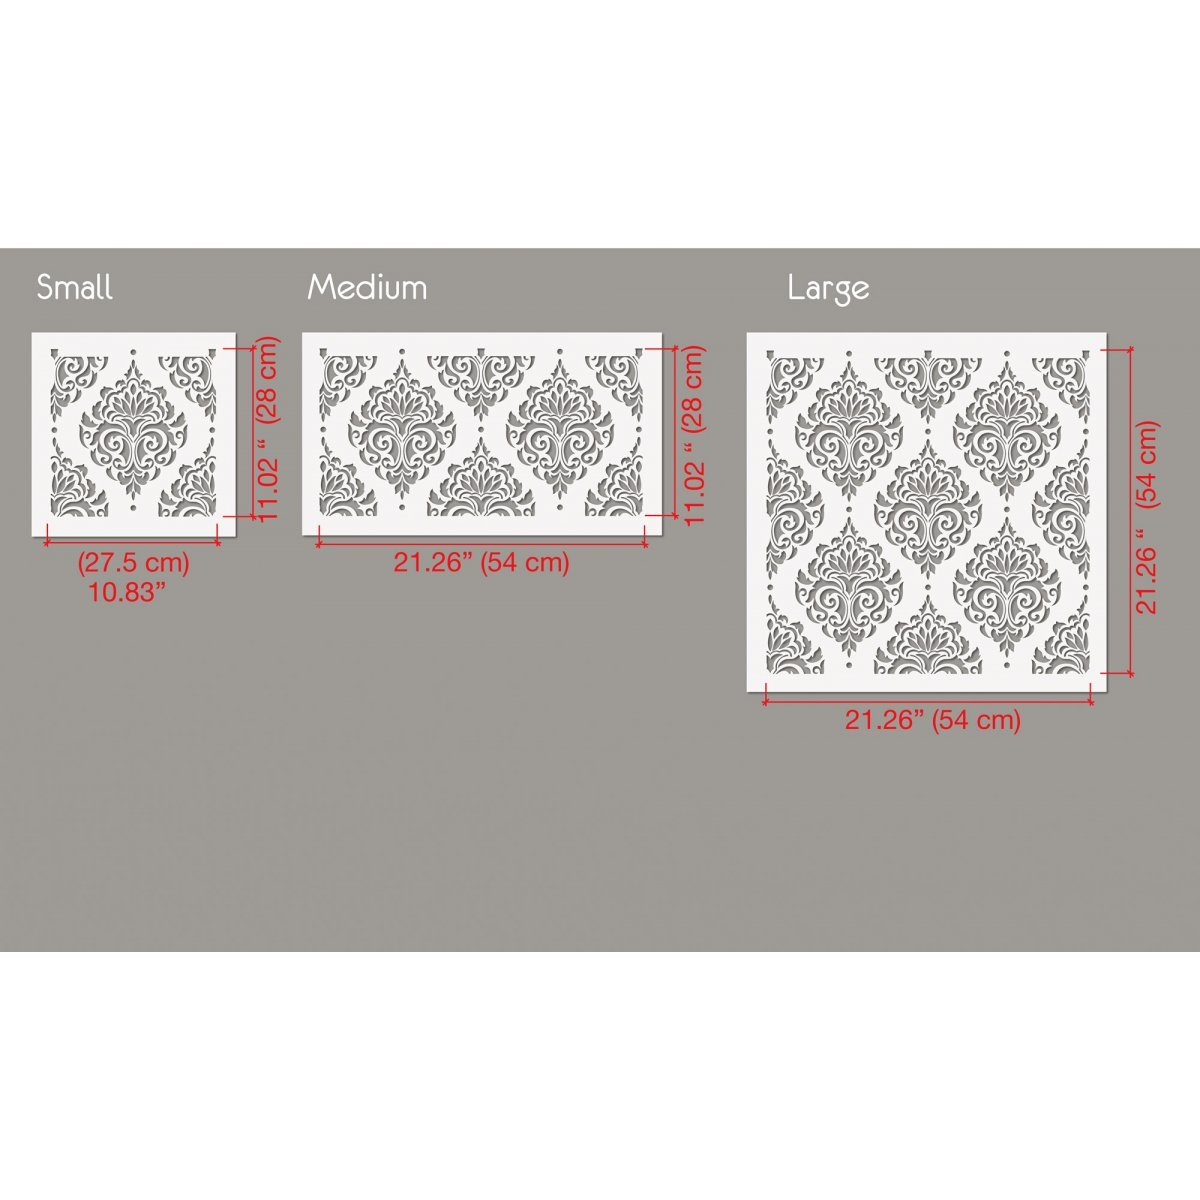 FLOWER DAMASK / Reusable Allover Large Wall Stencils for Painting